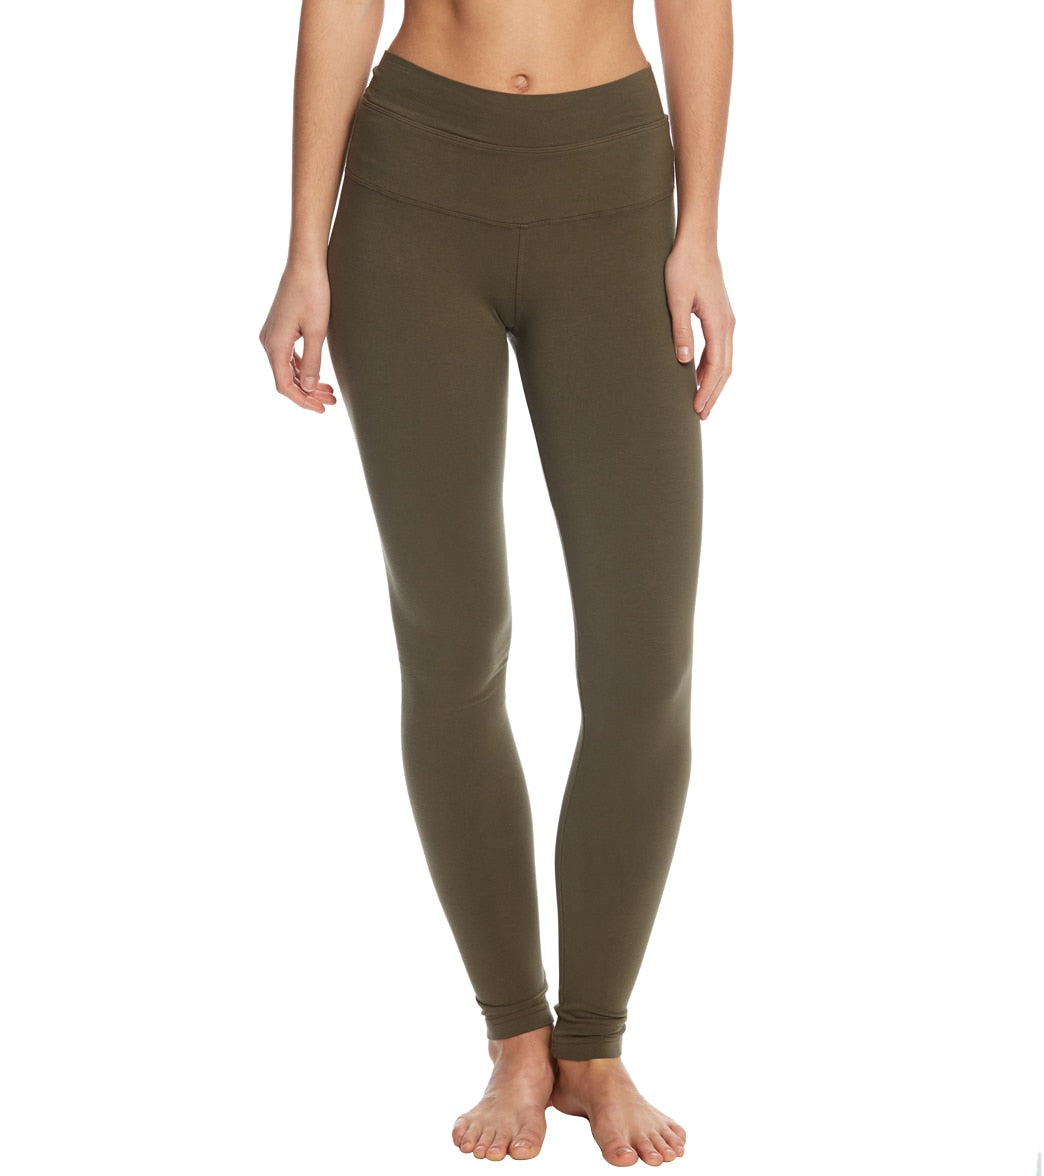 Hard Tail High Waisted Cotton Ankle Yoga Leggings - Olive